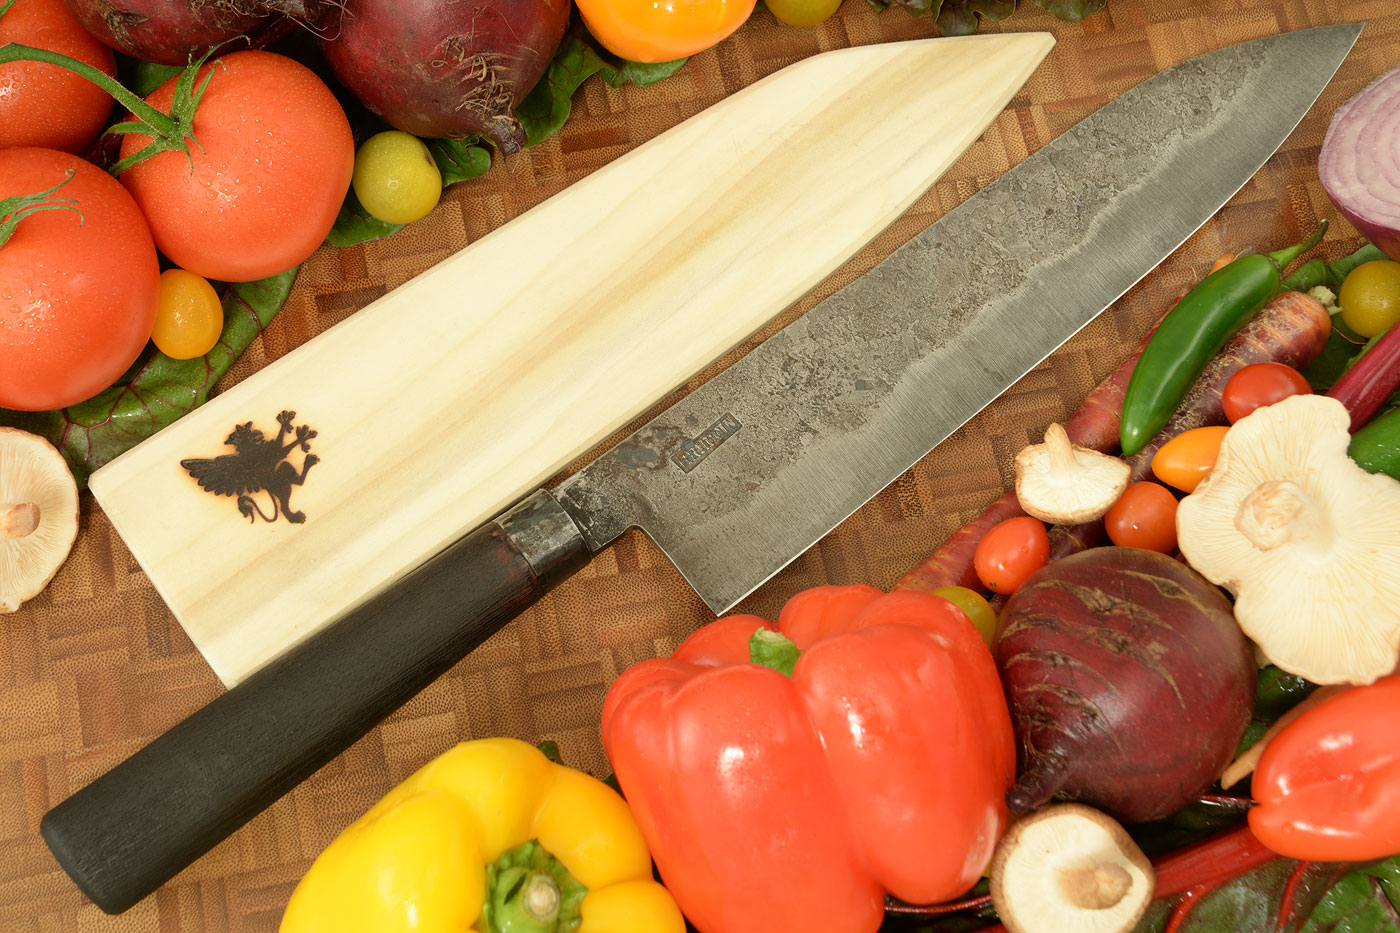 Chef's Knife (10.2 in.) with Burnt Mesquite